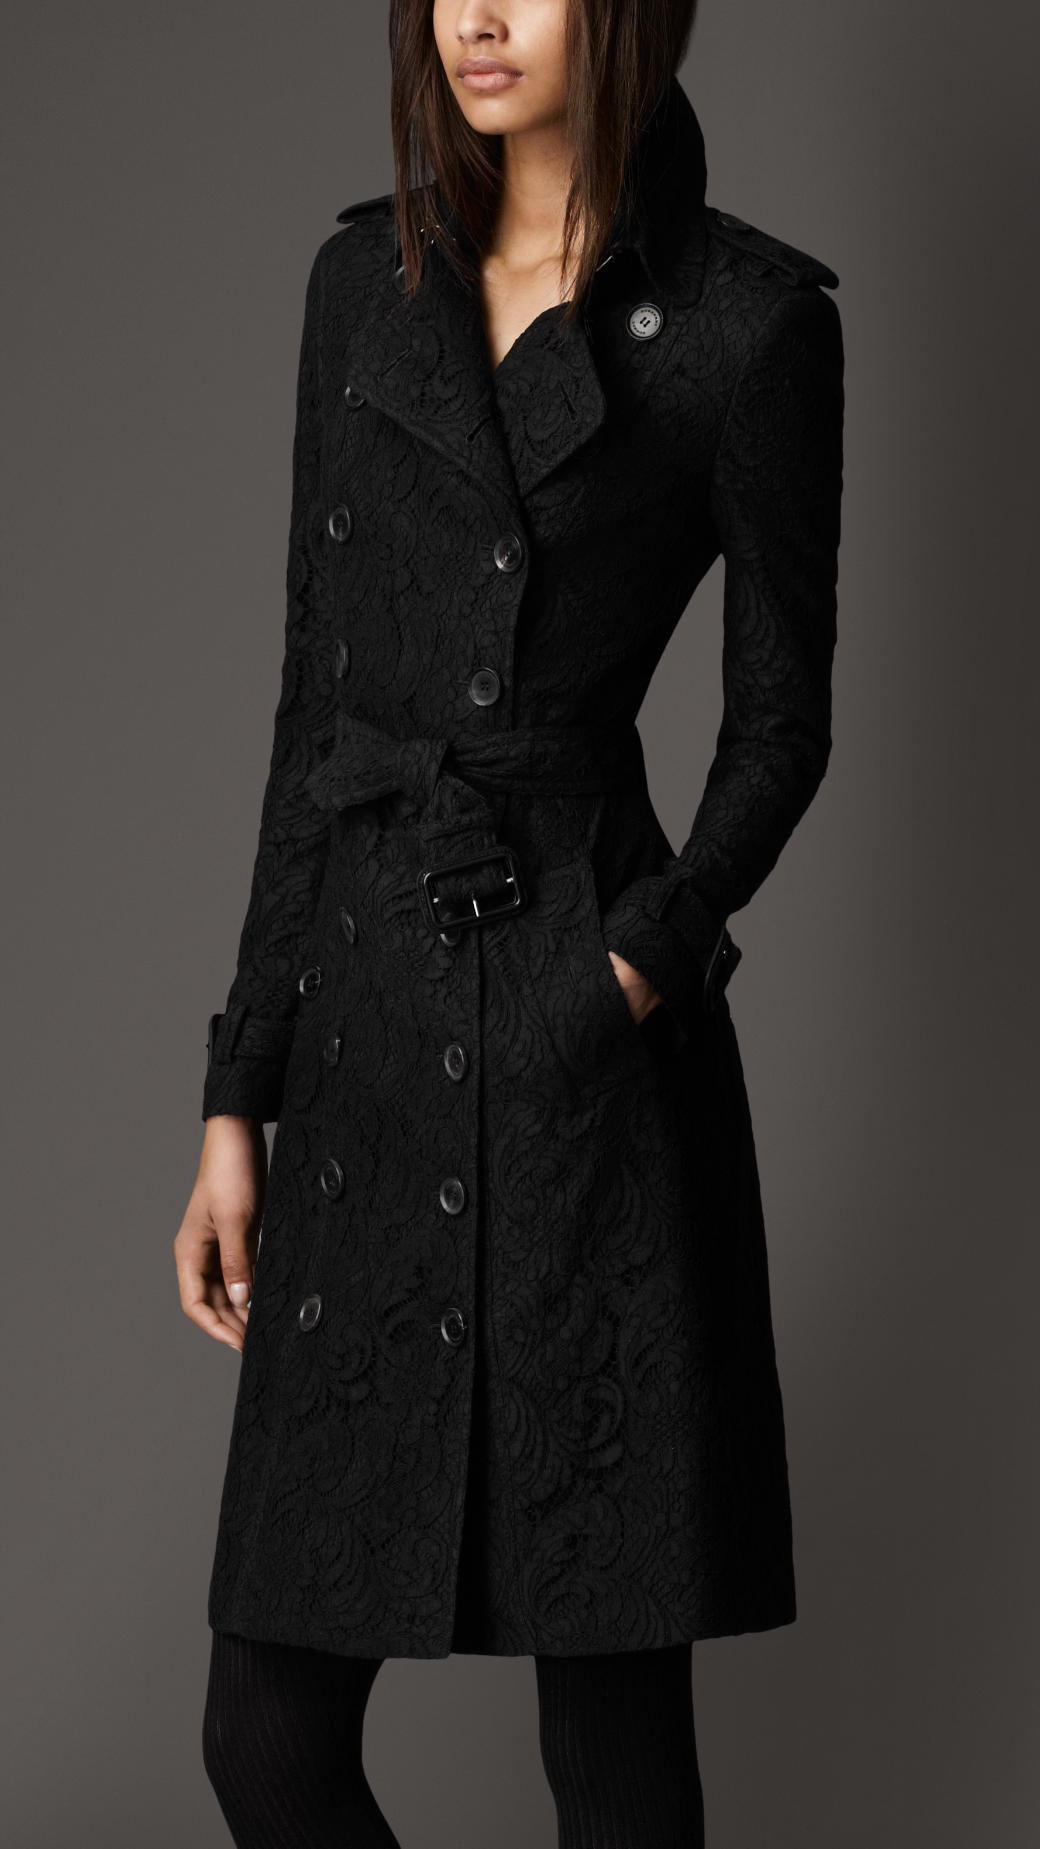 burberry long lace trench coat in black lyst. Black Bedroom Furniture Sets. Home Design Ideas